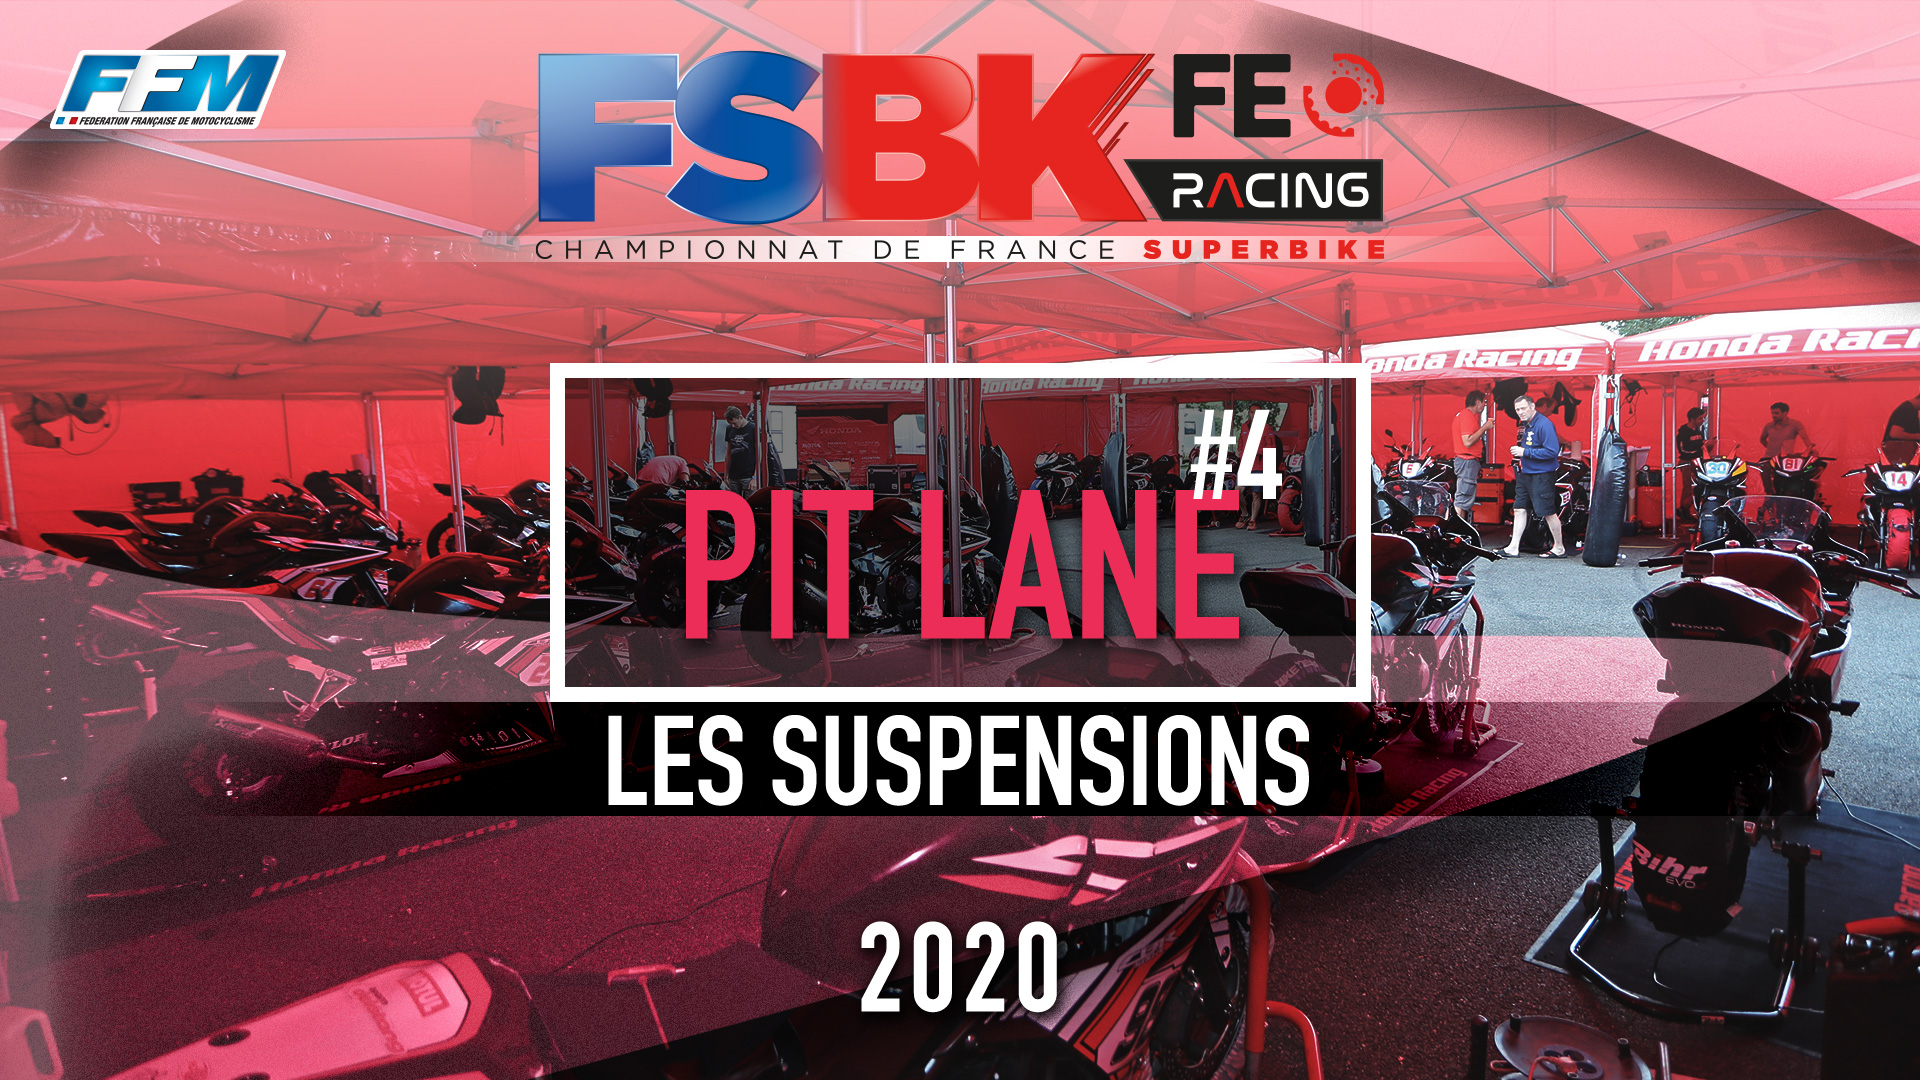 // PIT LANE – LES SUSPENSIONS //